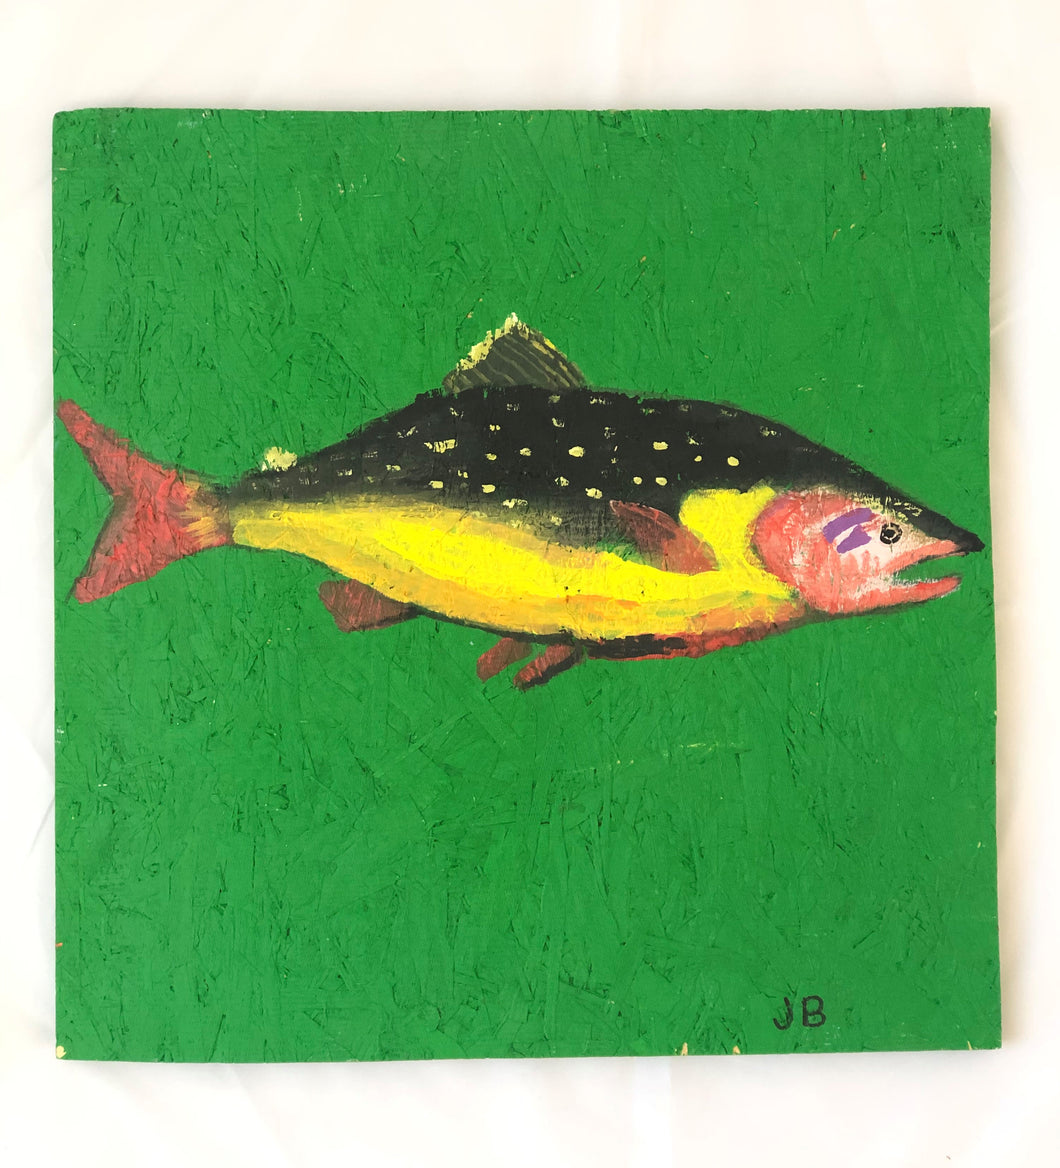 Tropical Fish on Plywood